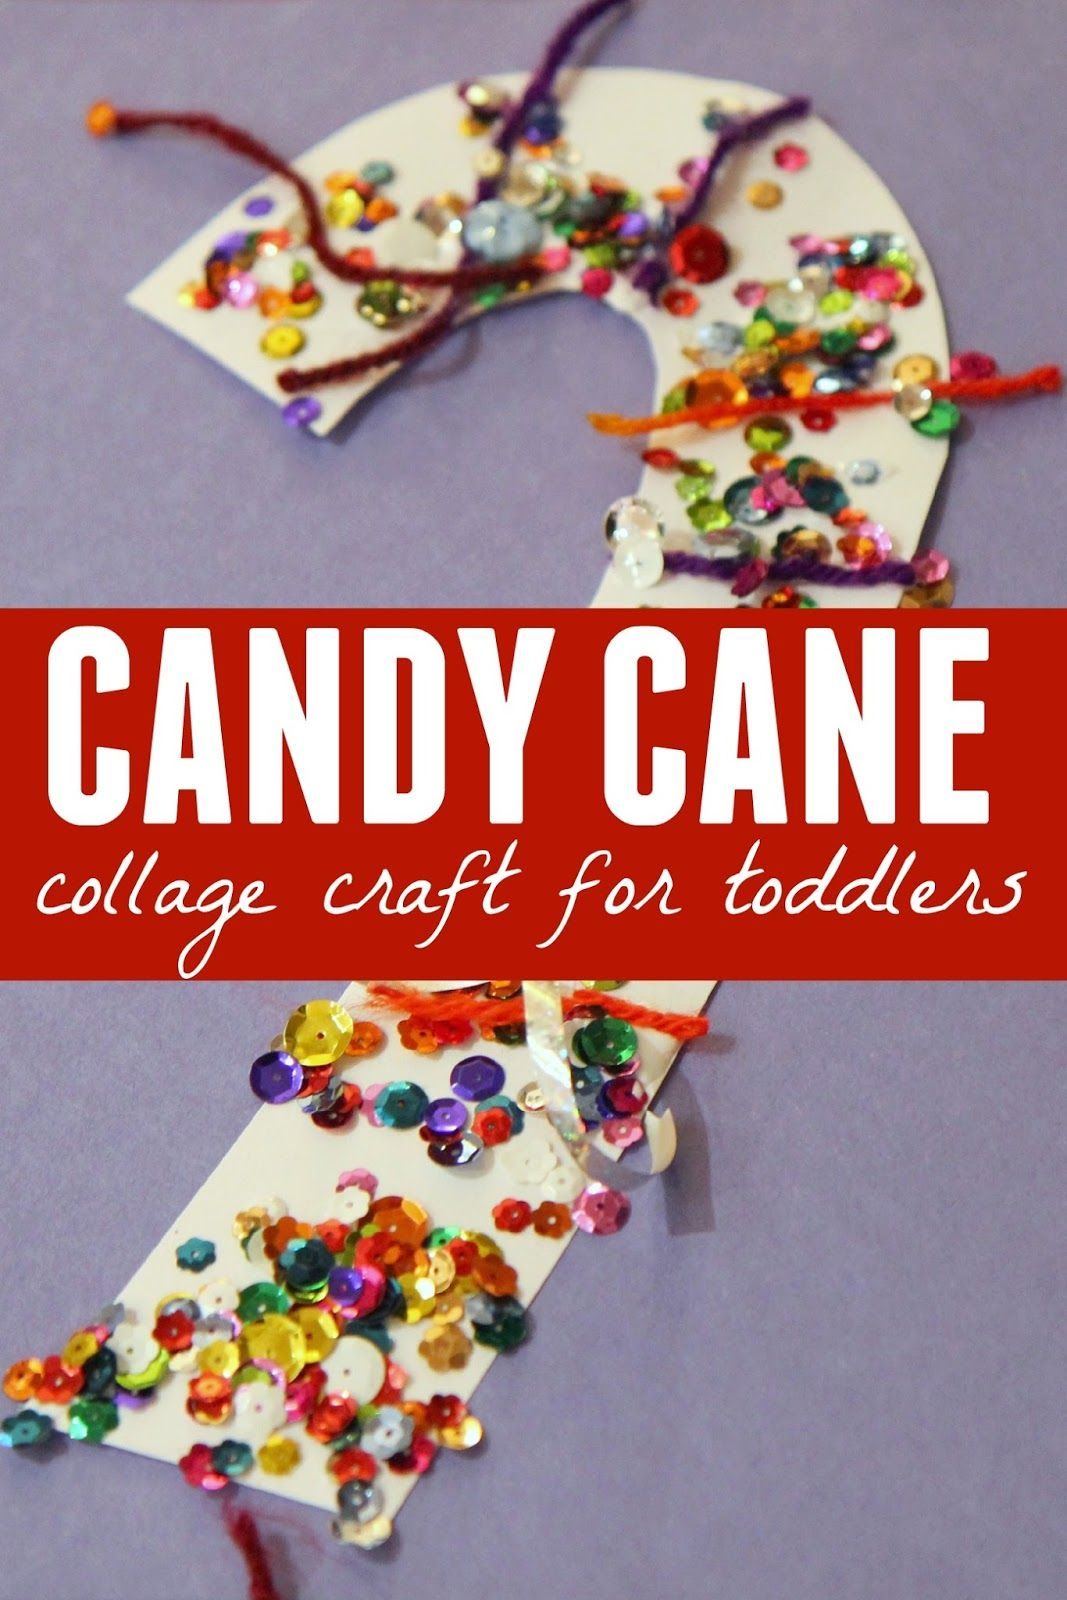 Candy Cane Collage Craft For Toddlers